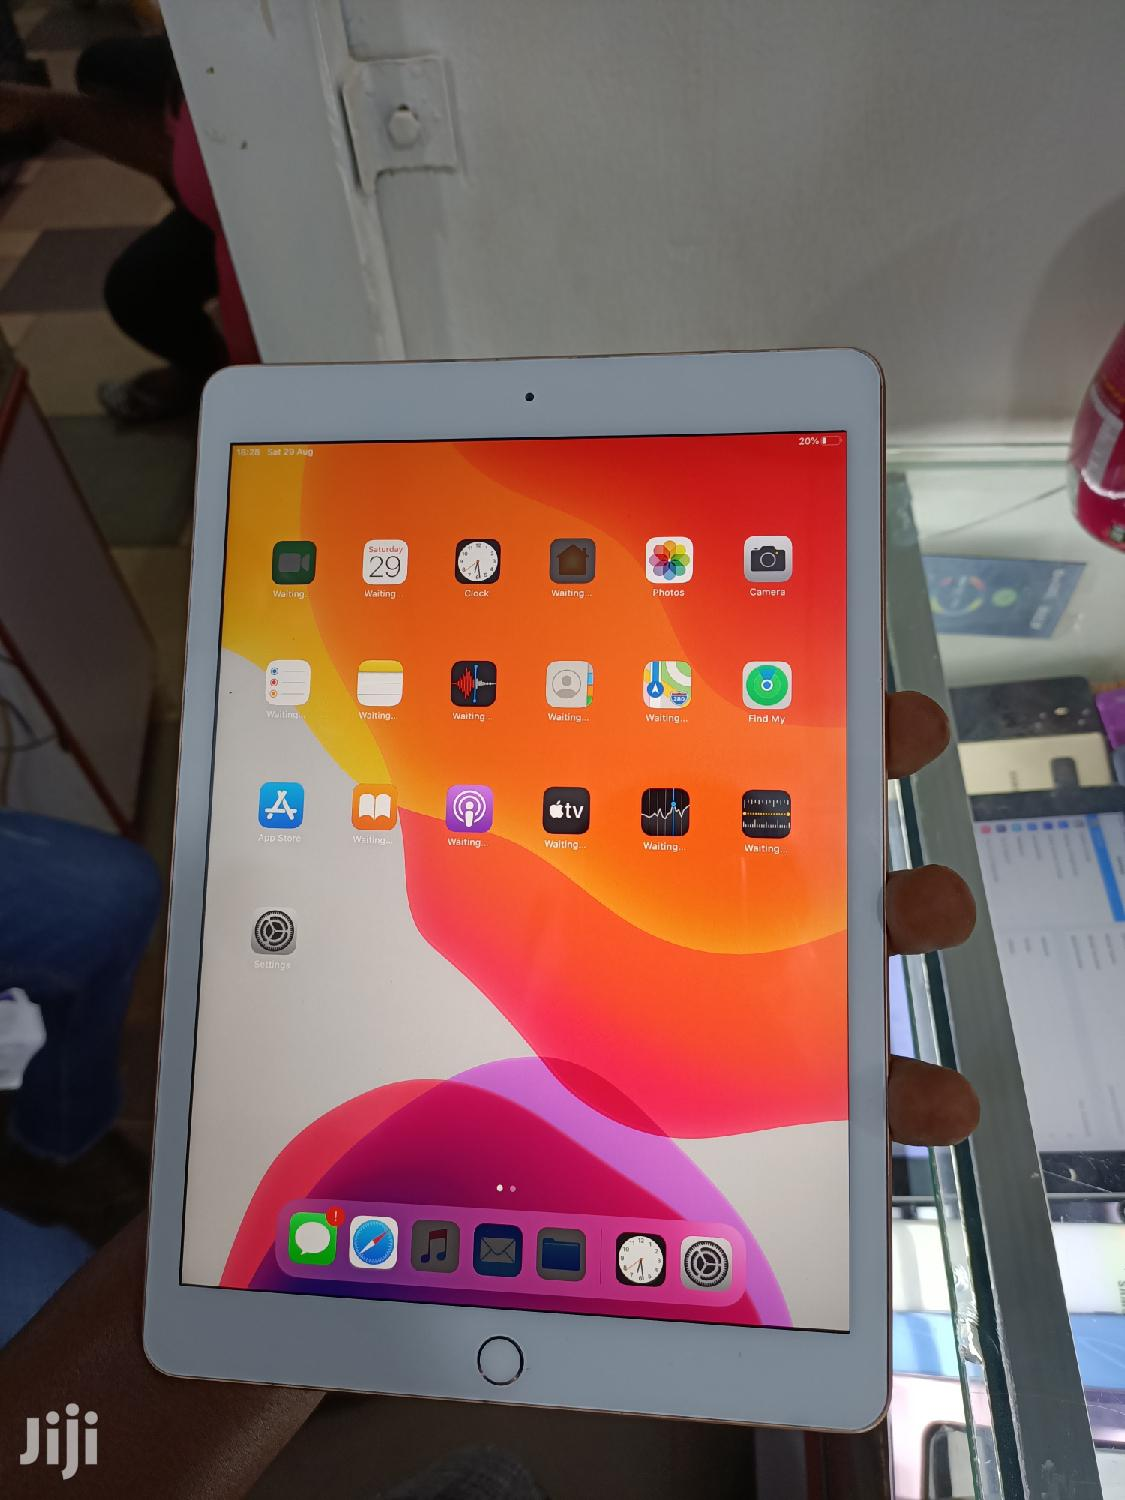 Apple iPad Air 2 32 GB Pink | Tablets for sale in Kampala, Central Region, Uganda